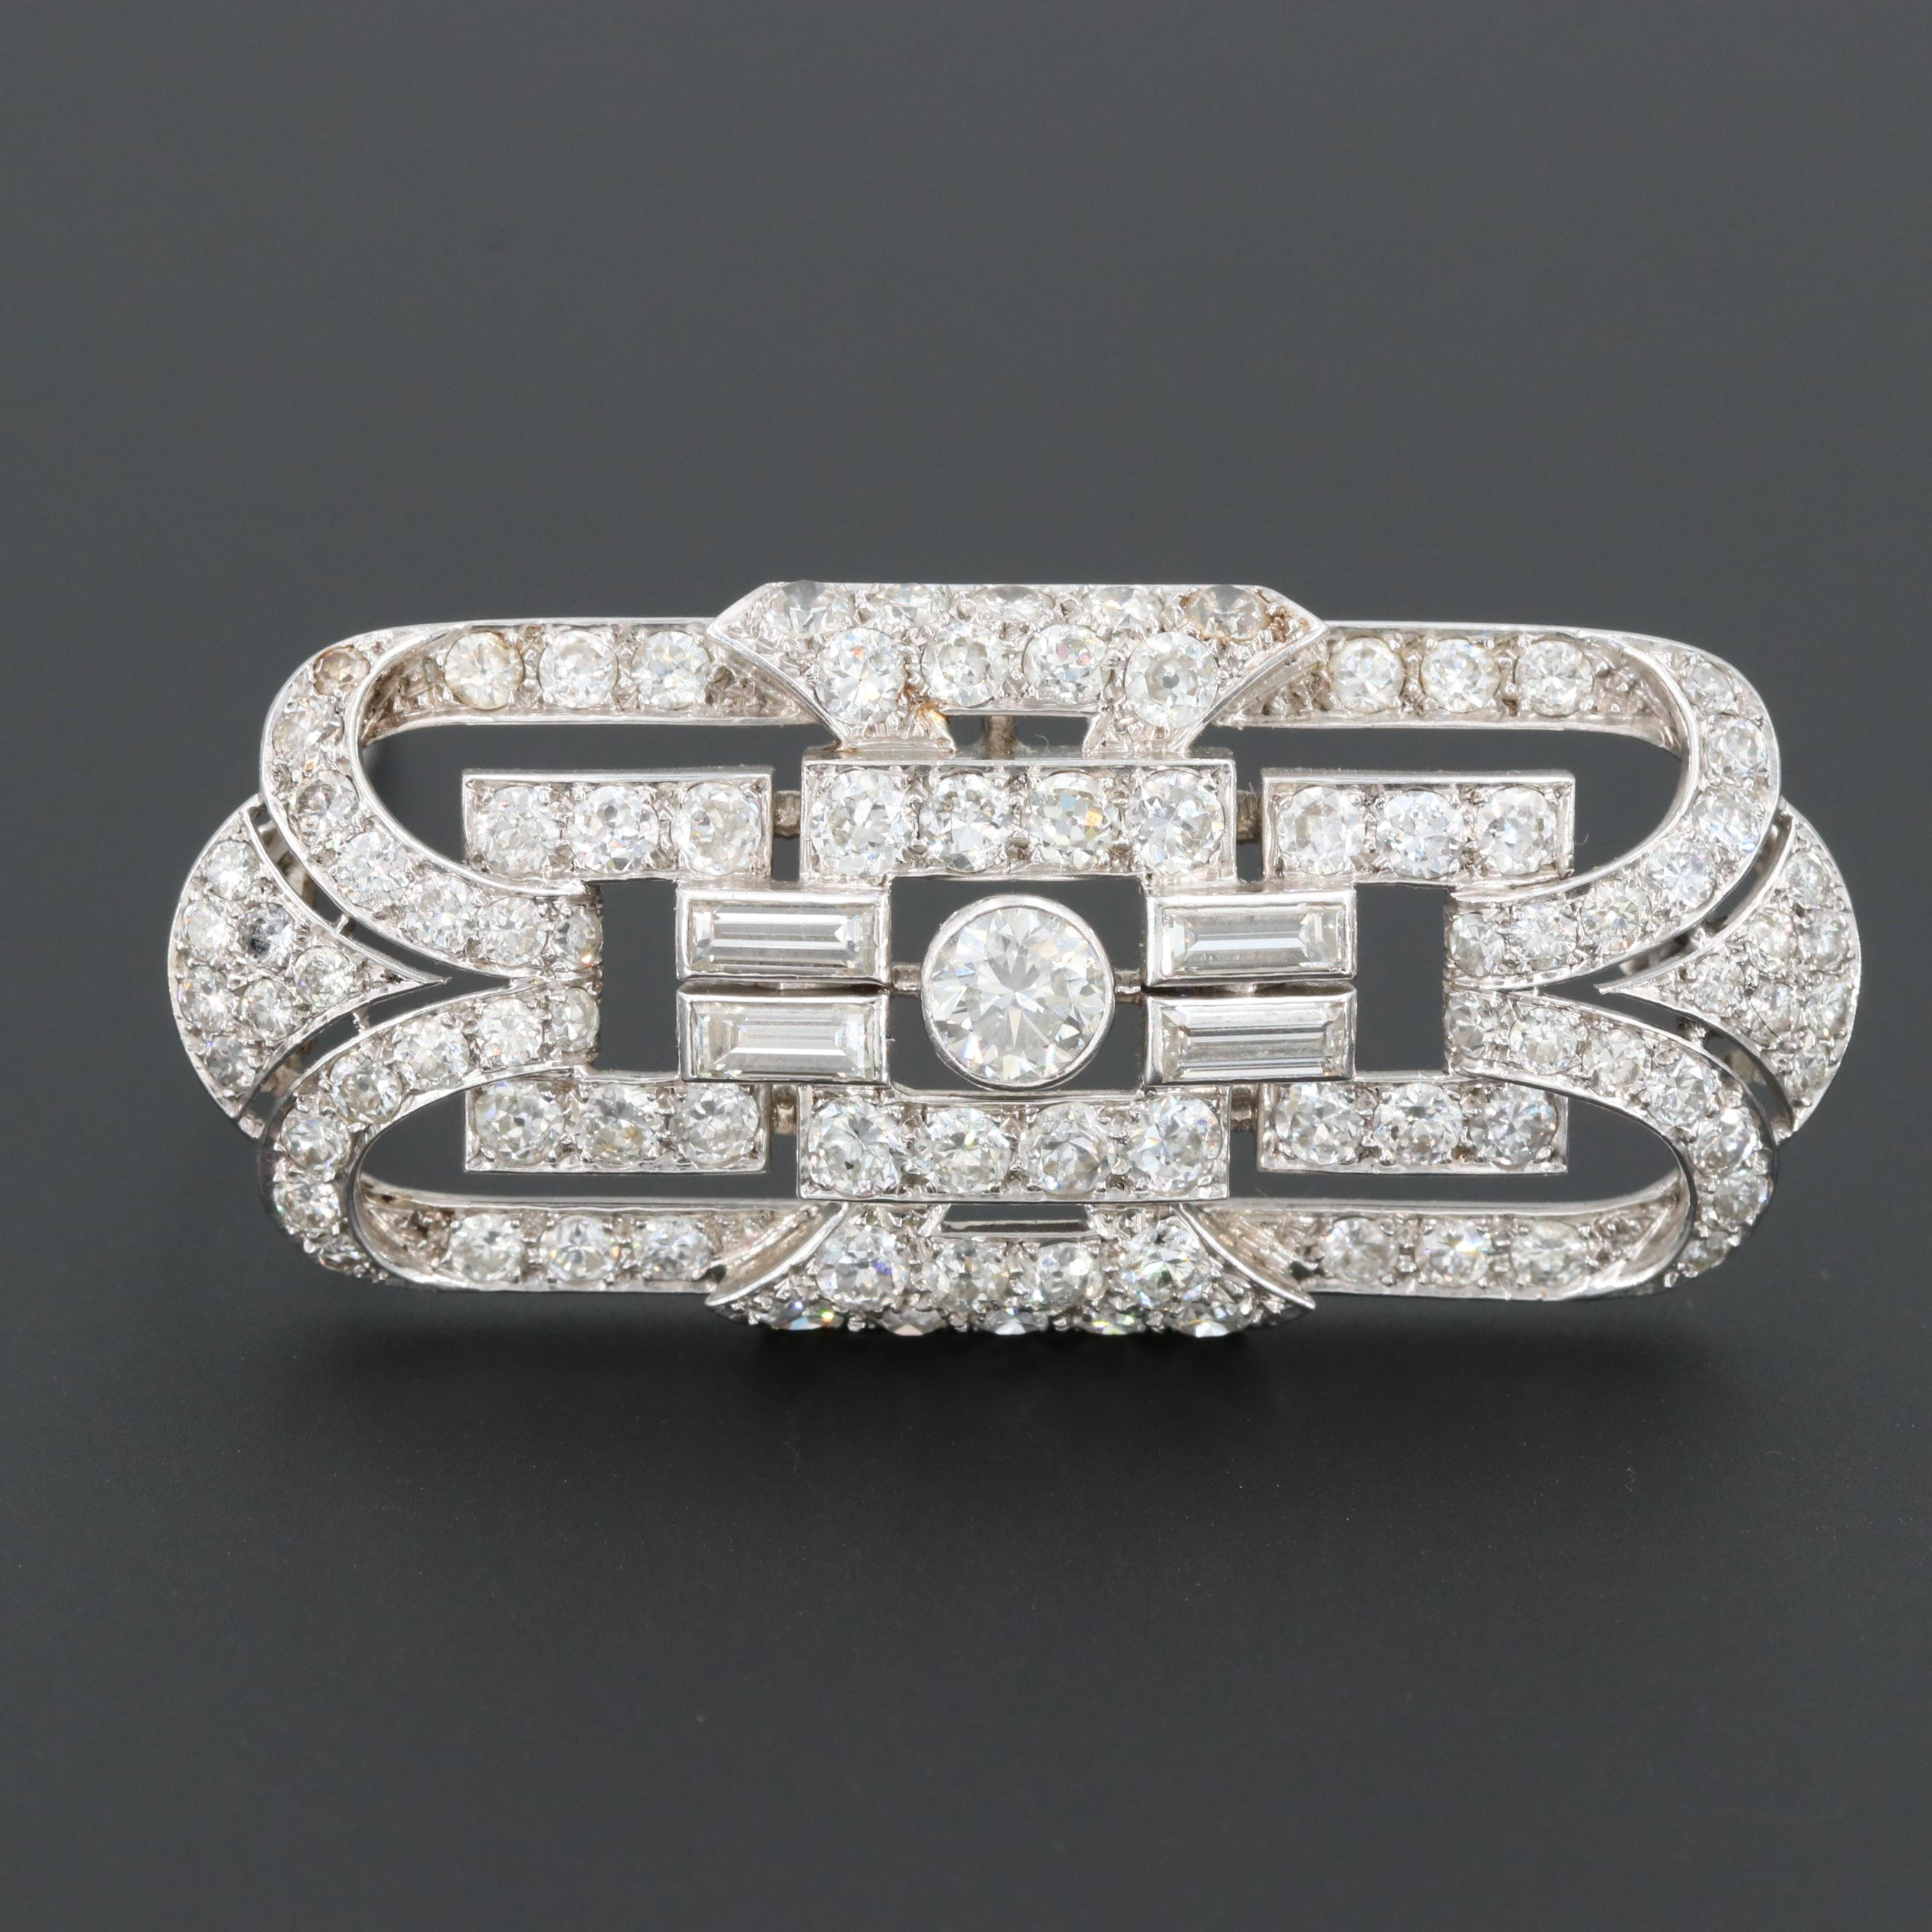 Art Deco Platinum 7.49 CTW Diamond Brooch with 18K and 14K  White Gold